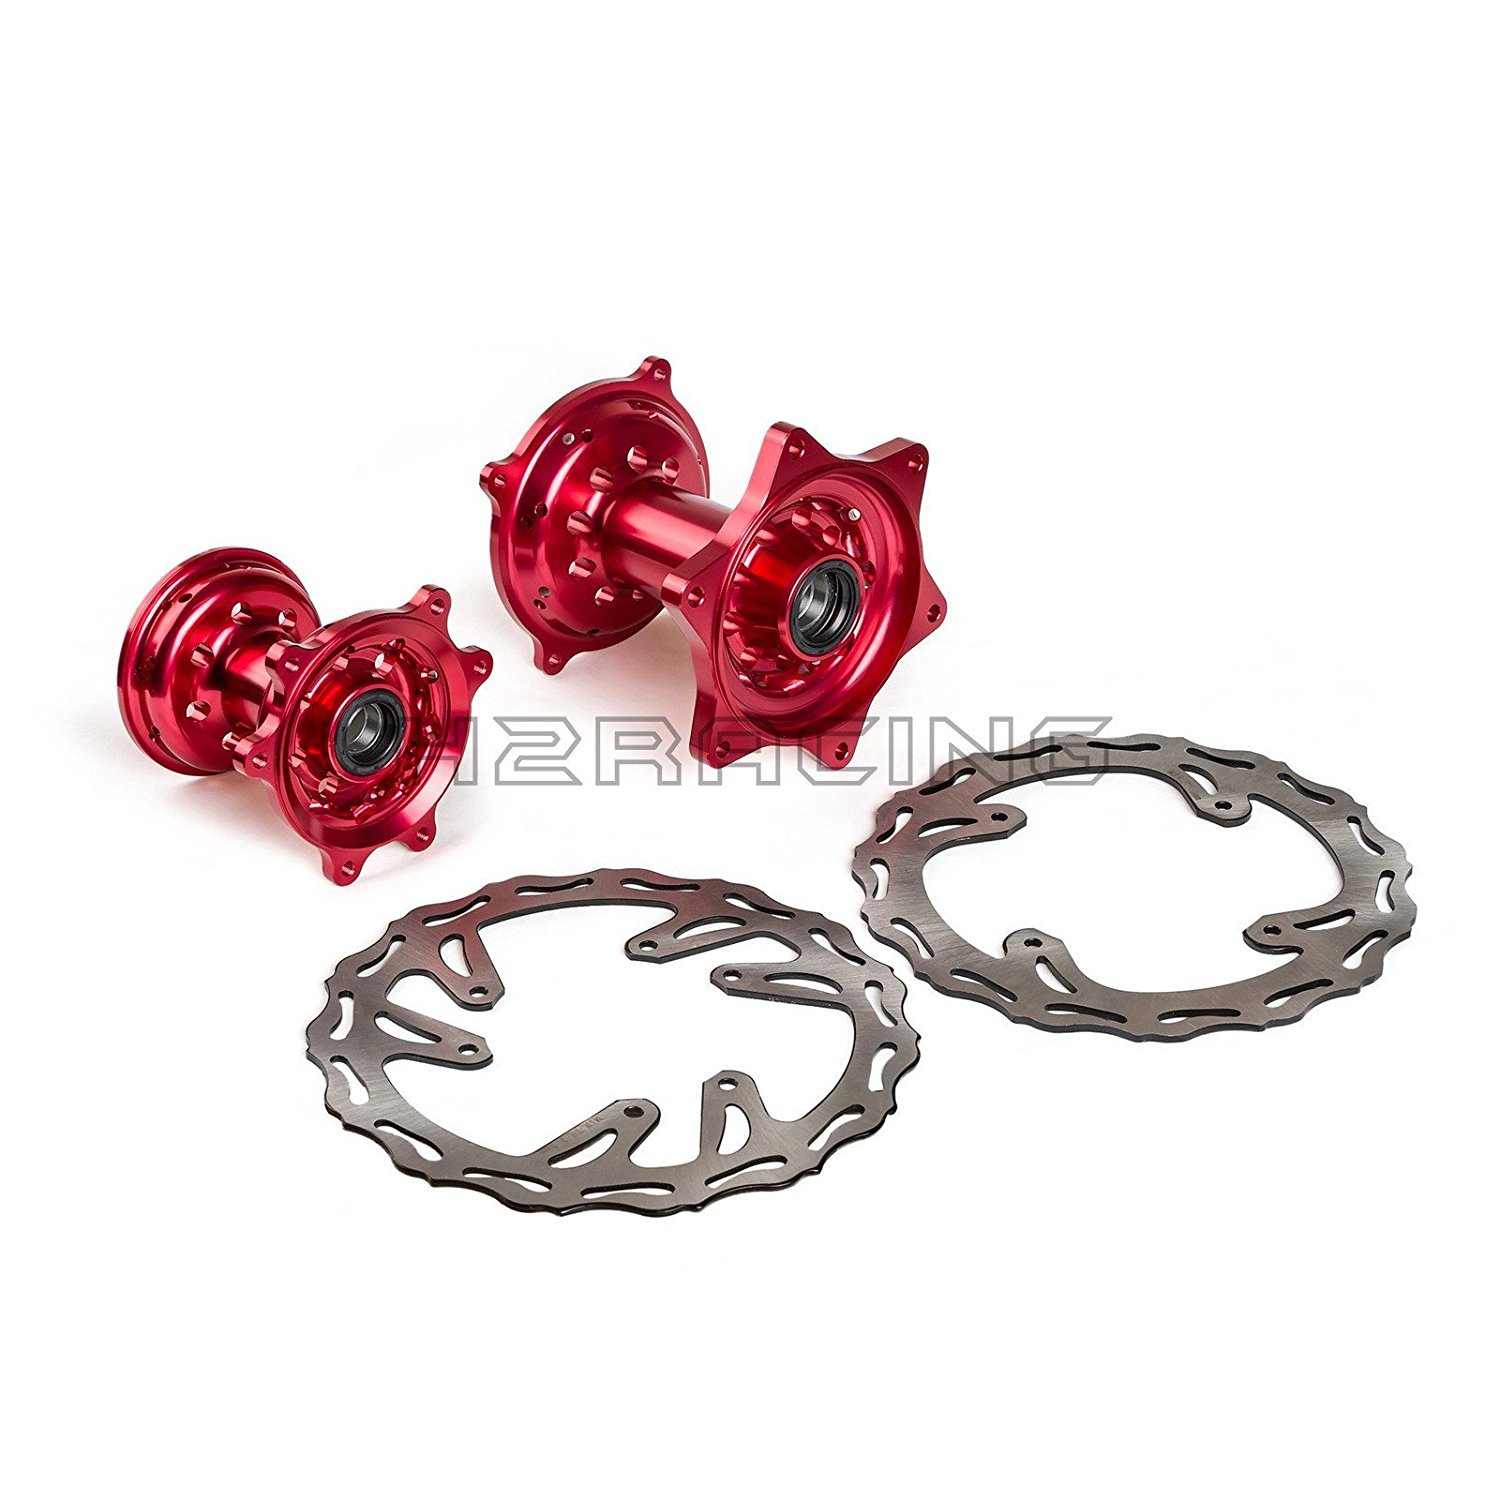 H2RACING Front & Rear Wheel Hubs with Brake Disc Rotors for Honda CR125R/250R 2002-2007 CRF250R 2004-2013 CRF450R 2002-2012 CRF250X 2004-2015 CRF450X 2005-2015